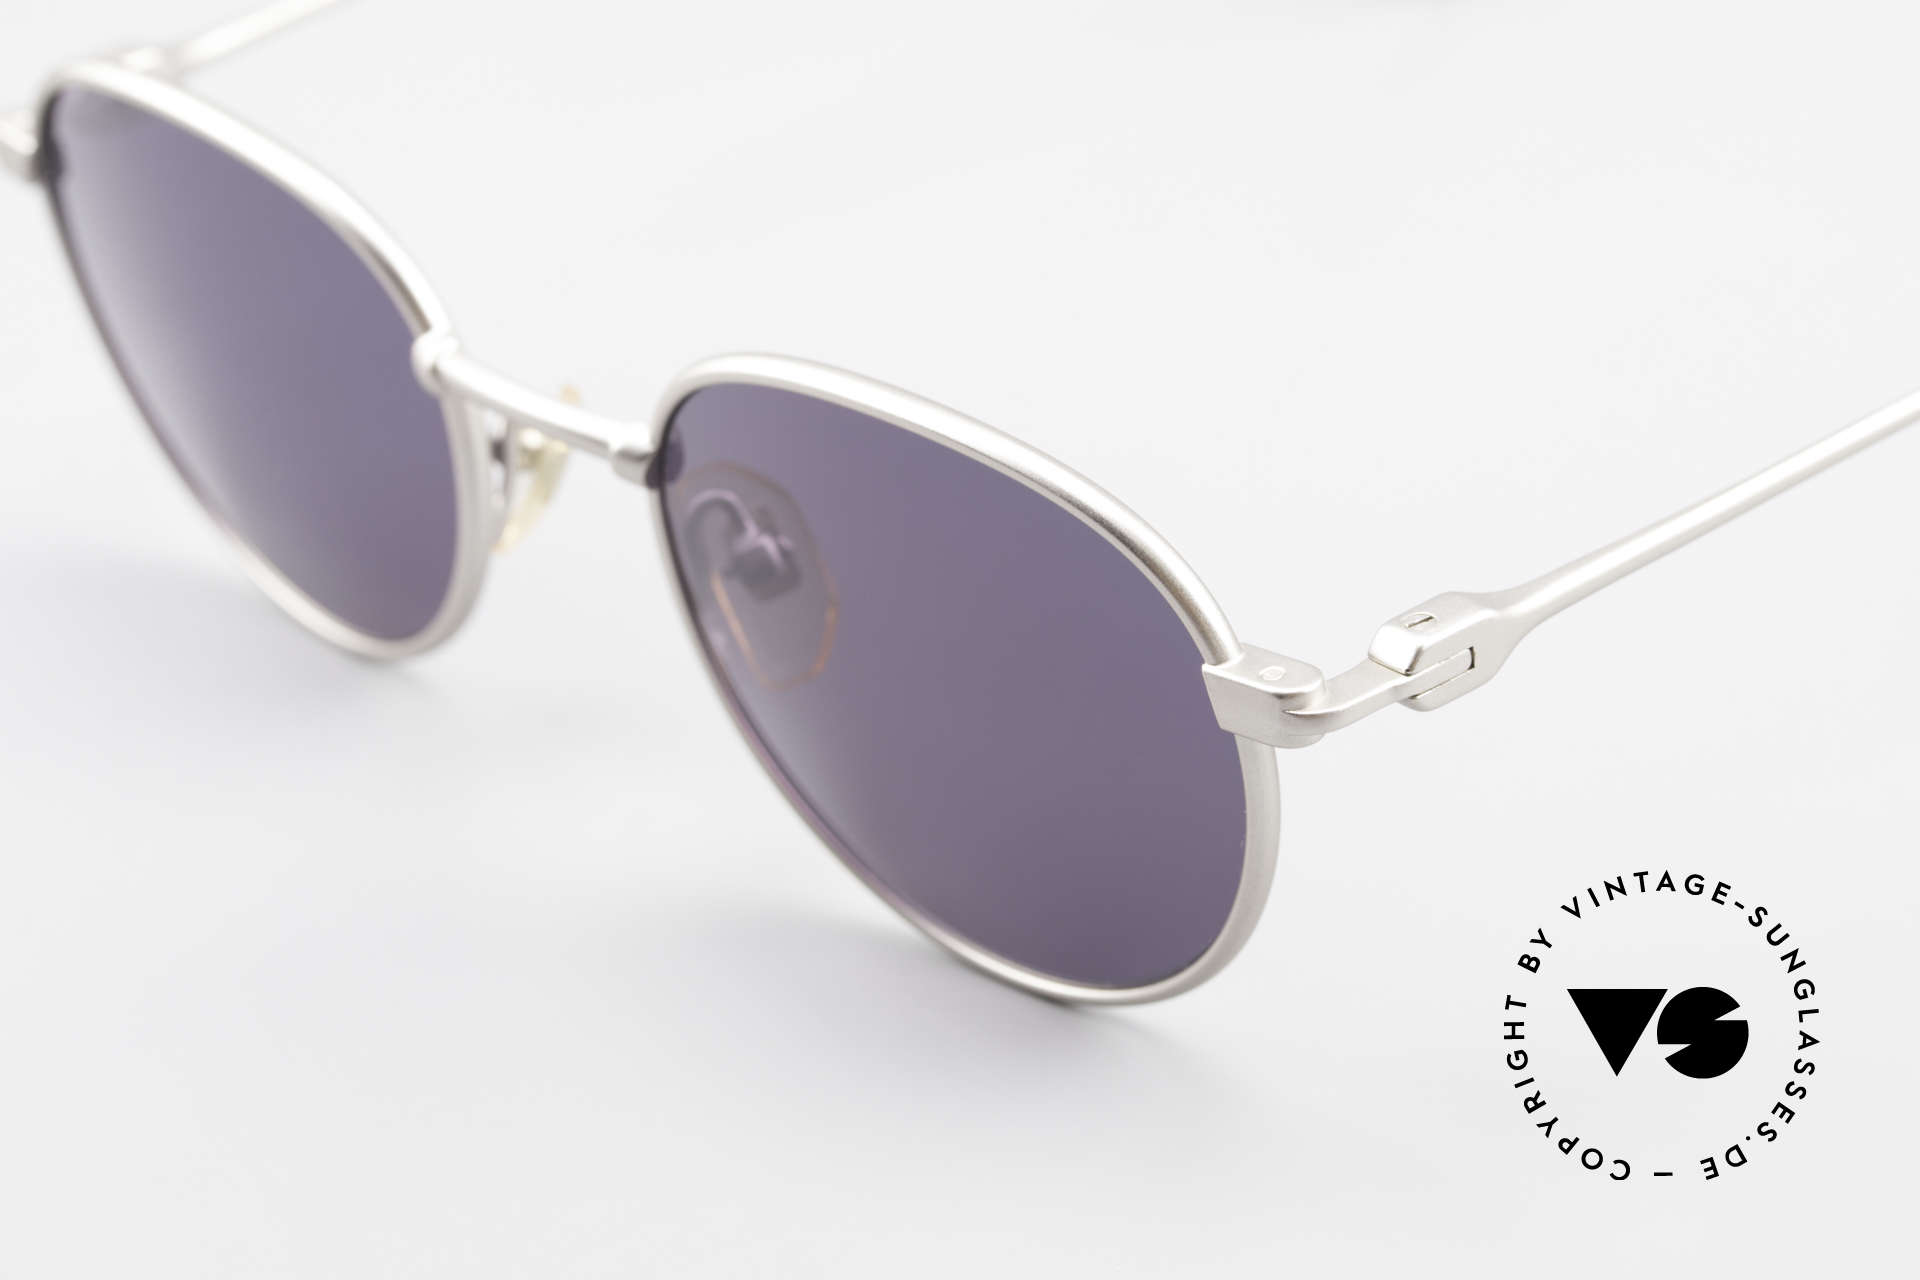 Yohji Yamamoto 52-4102 90's Panto Designer Sunglasses, also this pair seems built to last; 100% UV Protection, Made for Men and Women